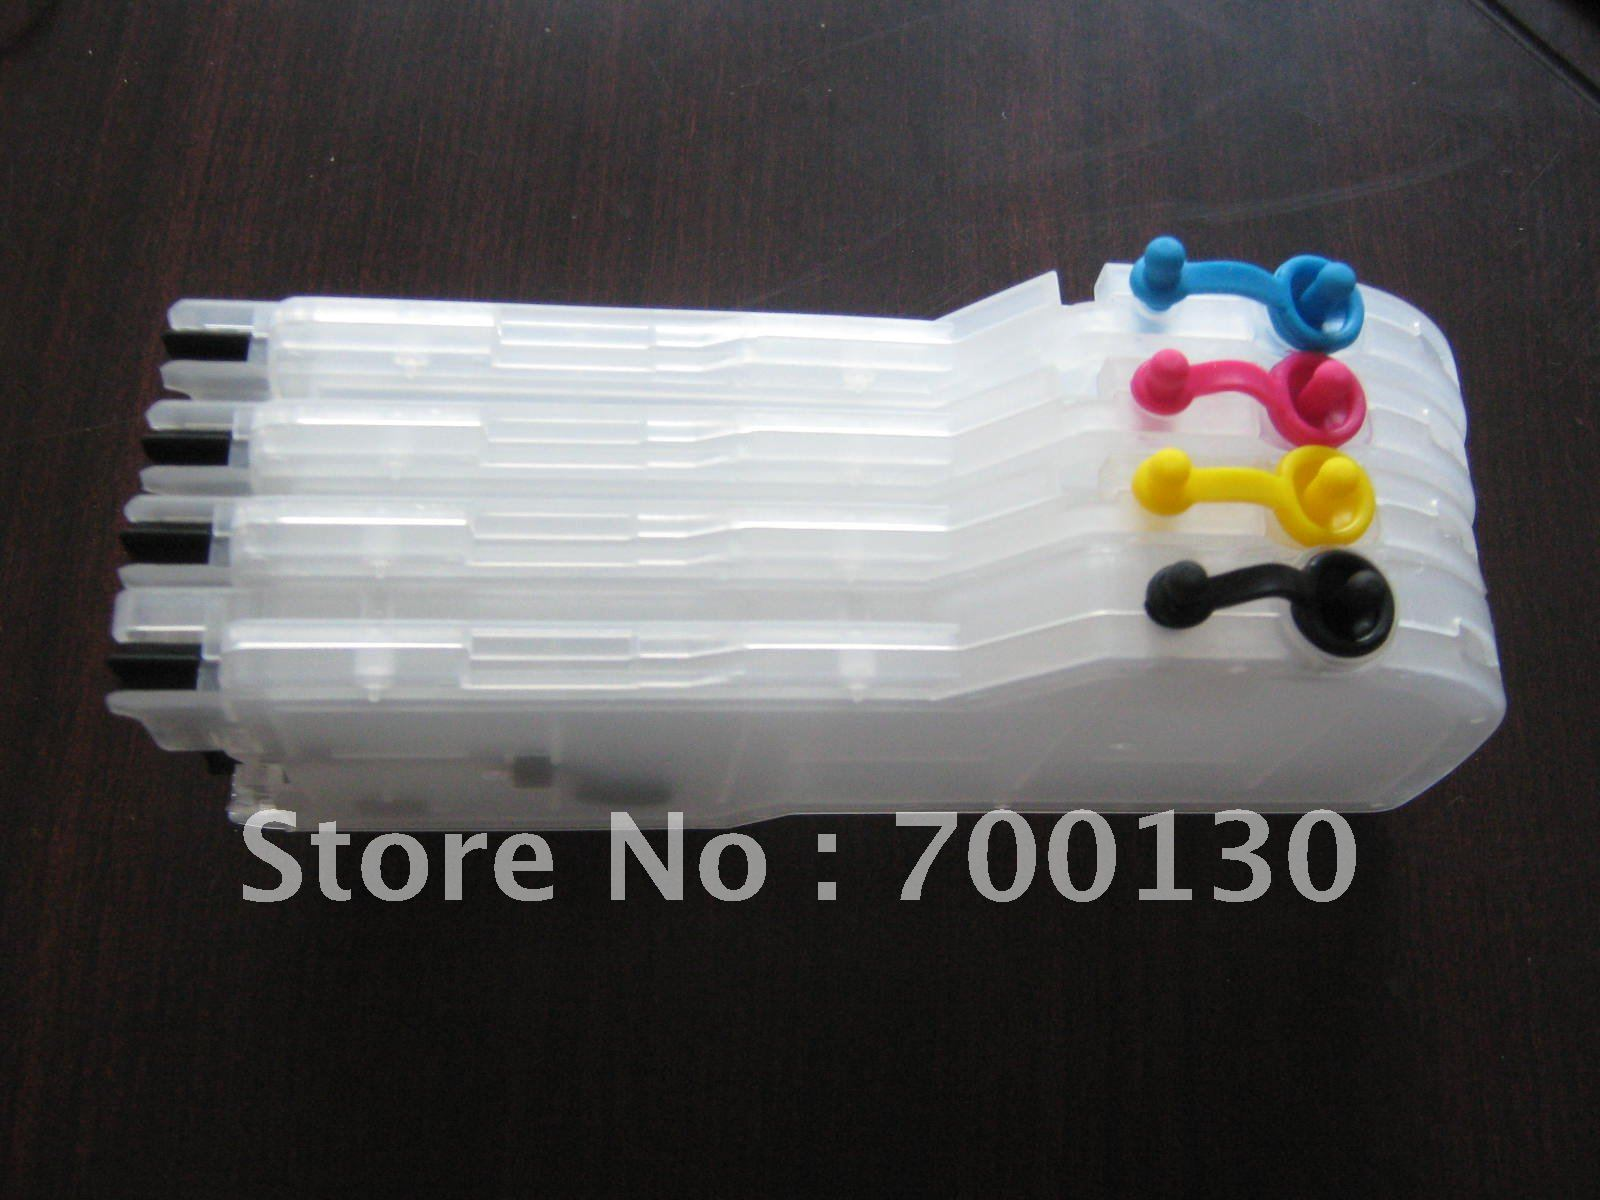 (RCB-LC39H) refill refillable ink cartridge for Brother MFC-J415W MFC-J220 LC 39/985 LC39 LC985 big high capacity free DHL<br><br>Aliexpress